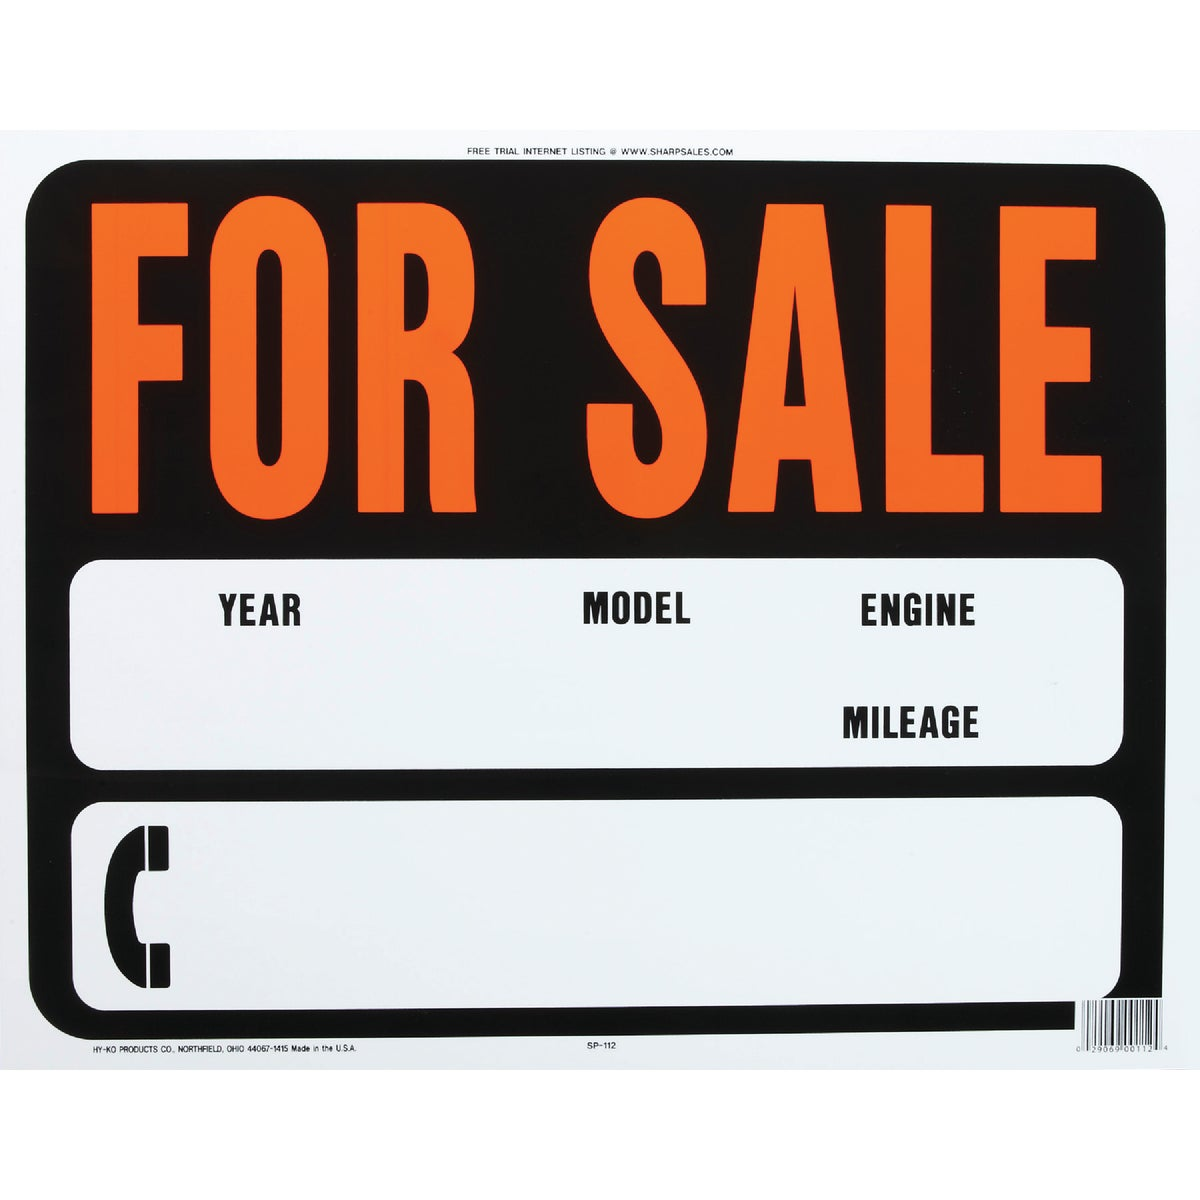 15X19 AUTO FOR SALE SIGN